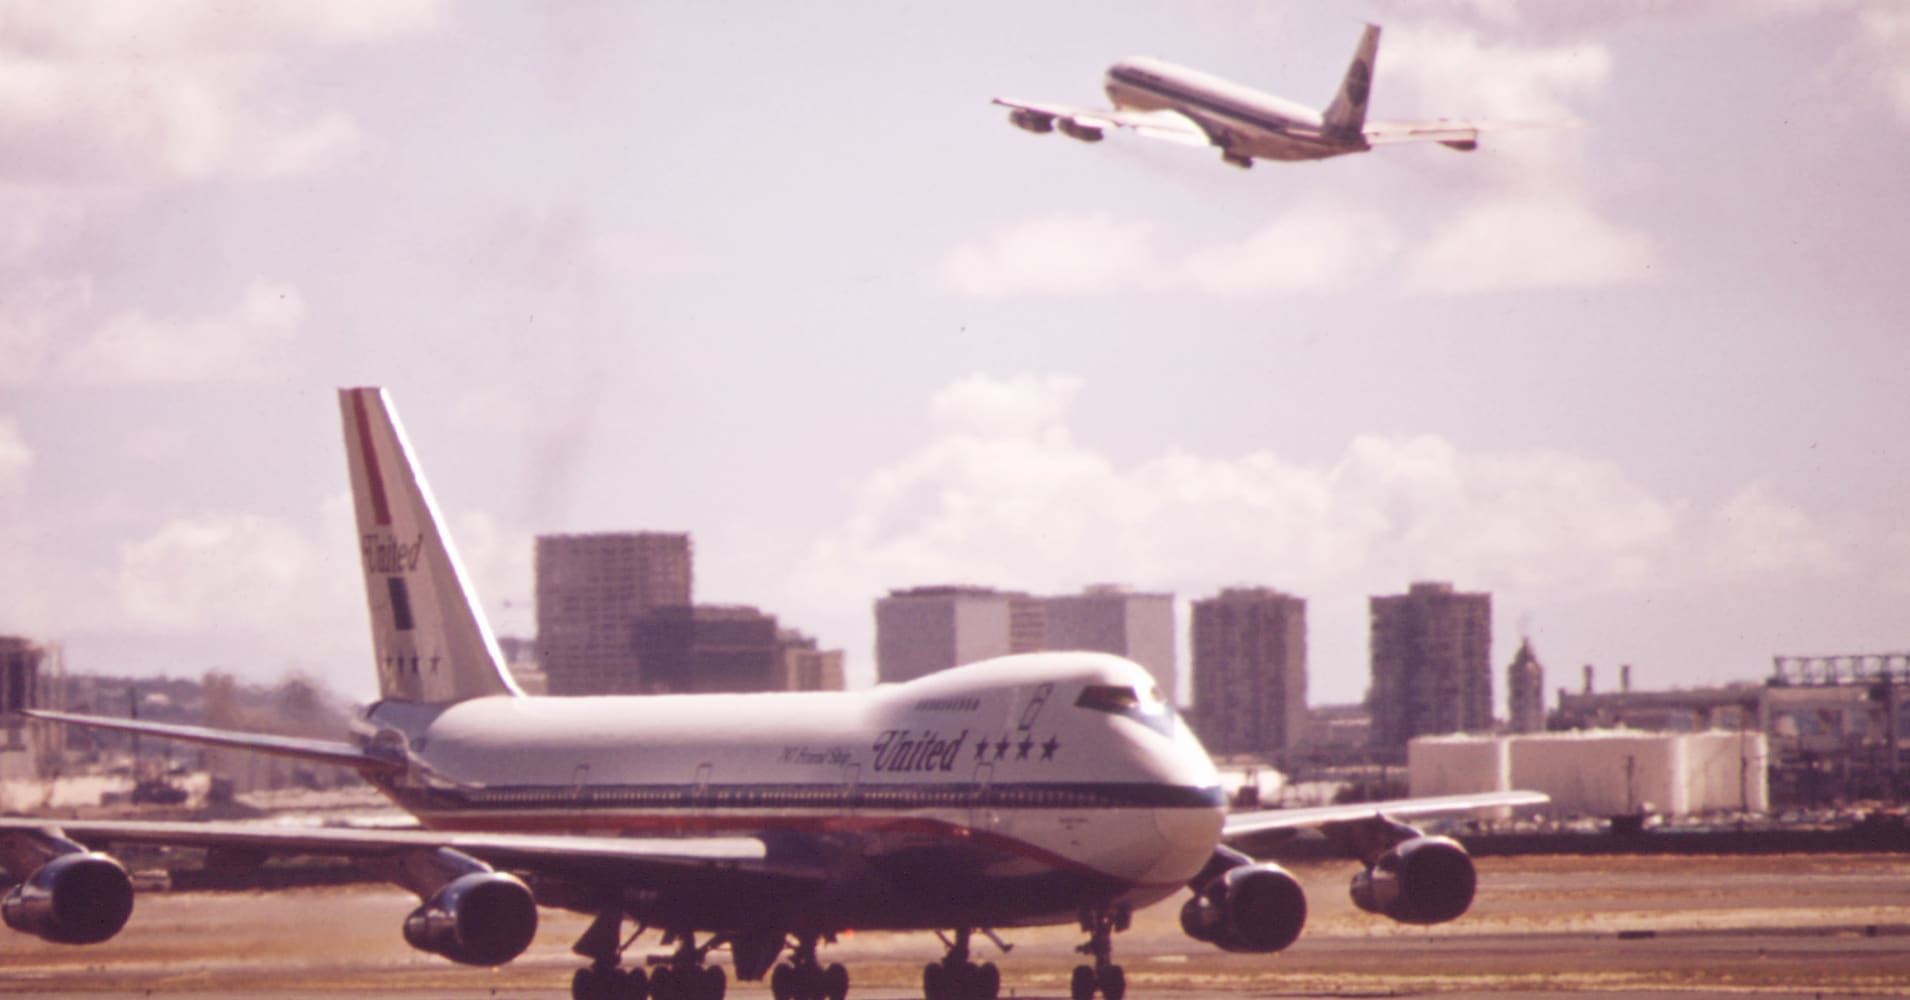 A Boeing 747 in Honolulu, Hawaii in 1973.